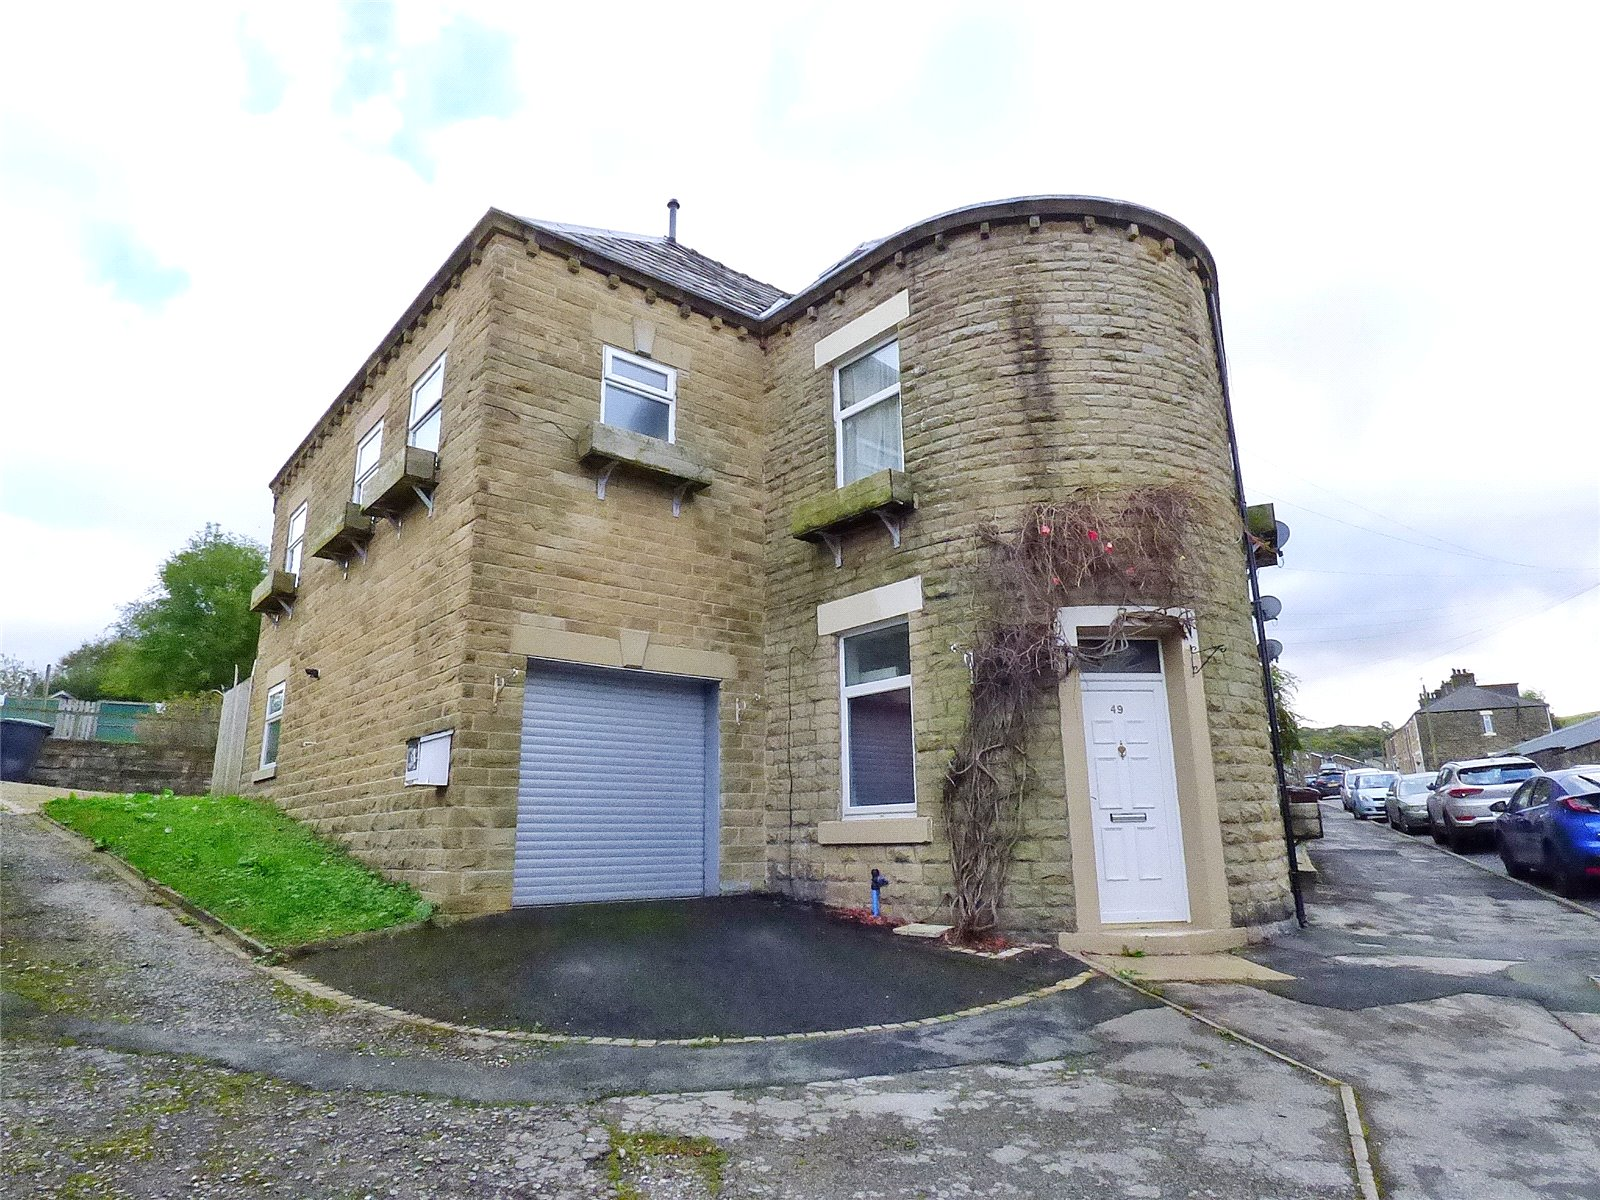 5 Bedrooms End Of Terrace House for sale in Platt Street, Padfield, Glossop, SK13